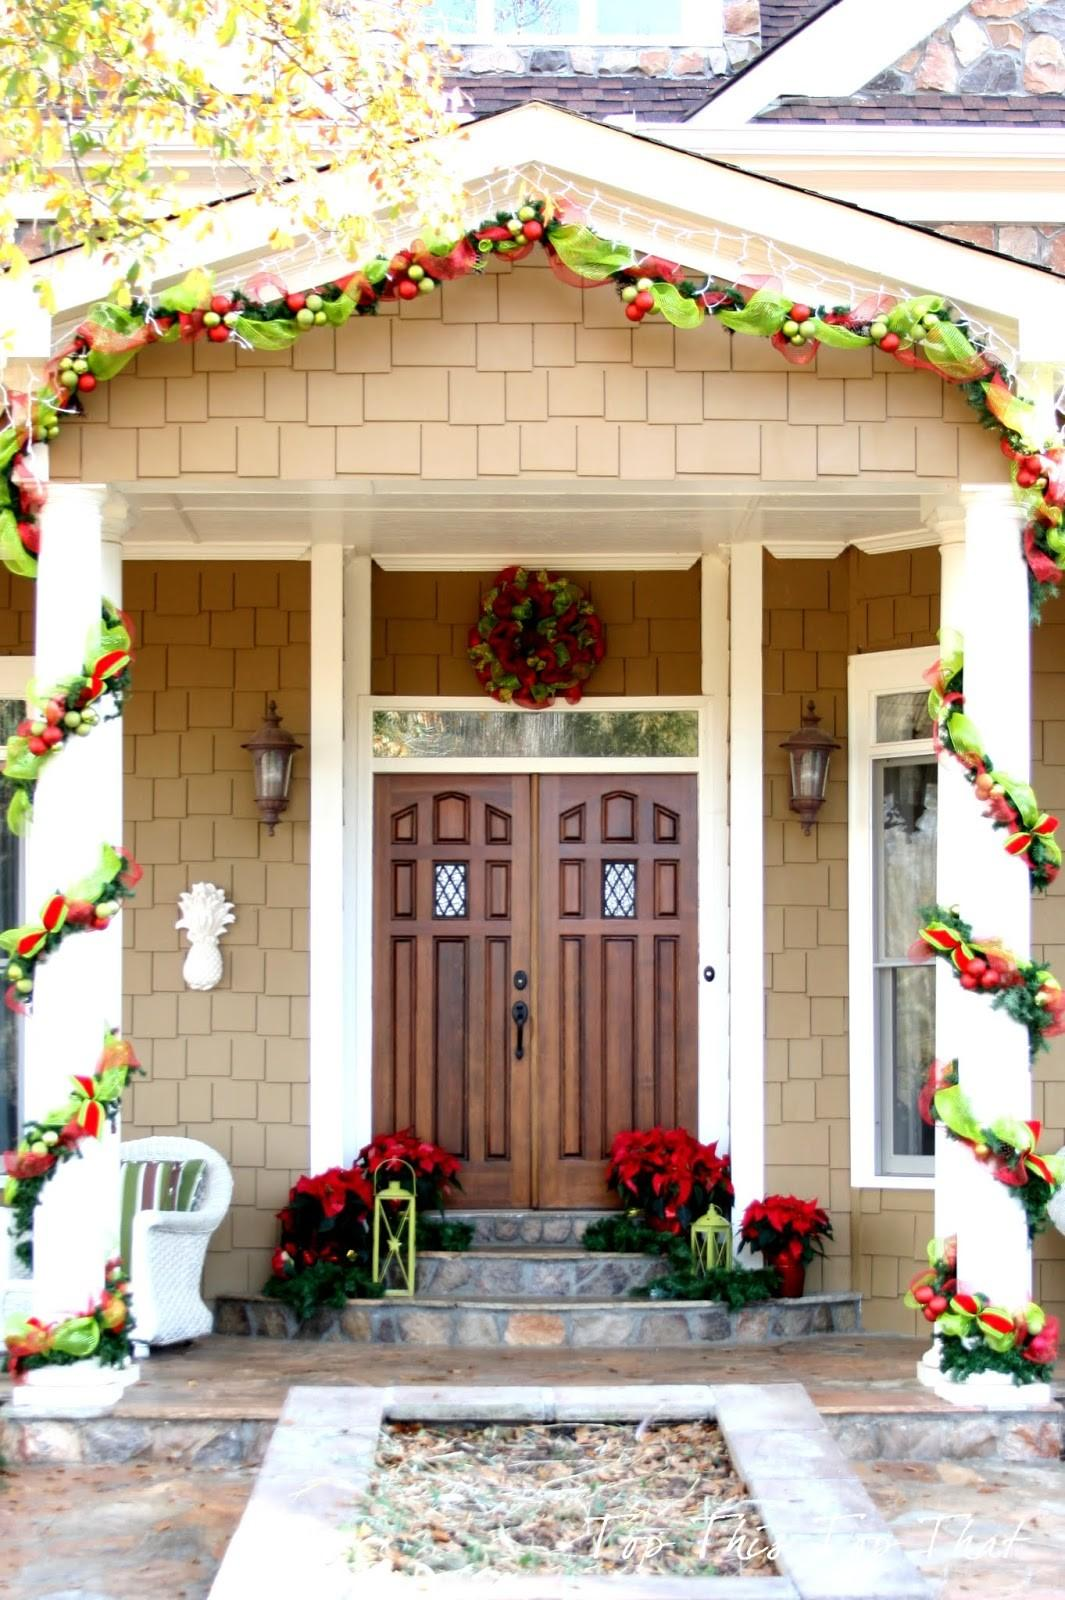 Decorations Green Red Fabrics Wreath Christmas Home